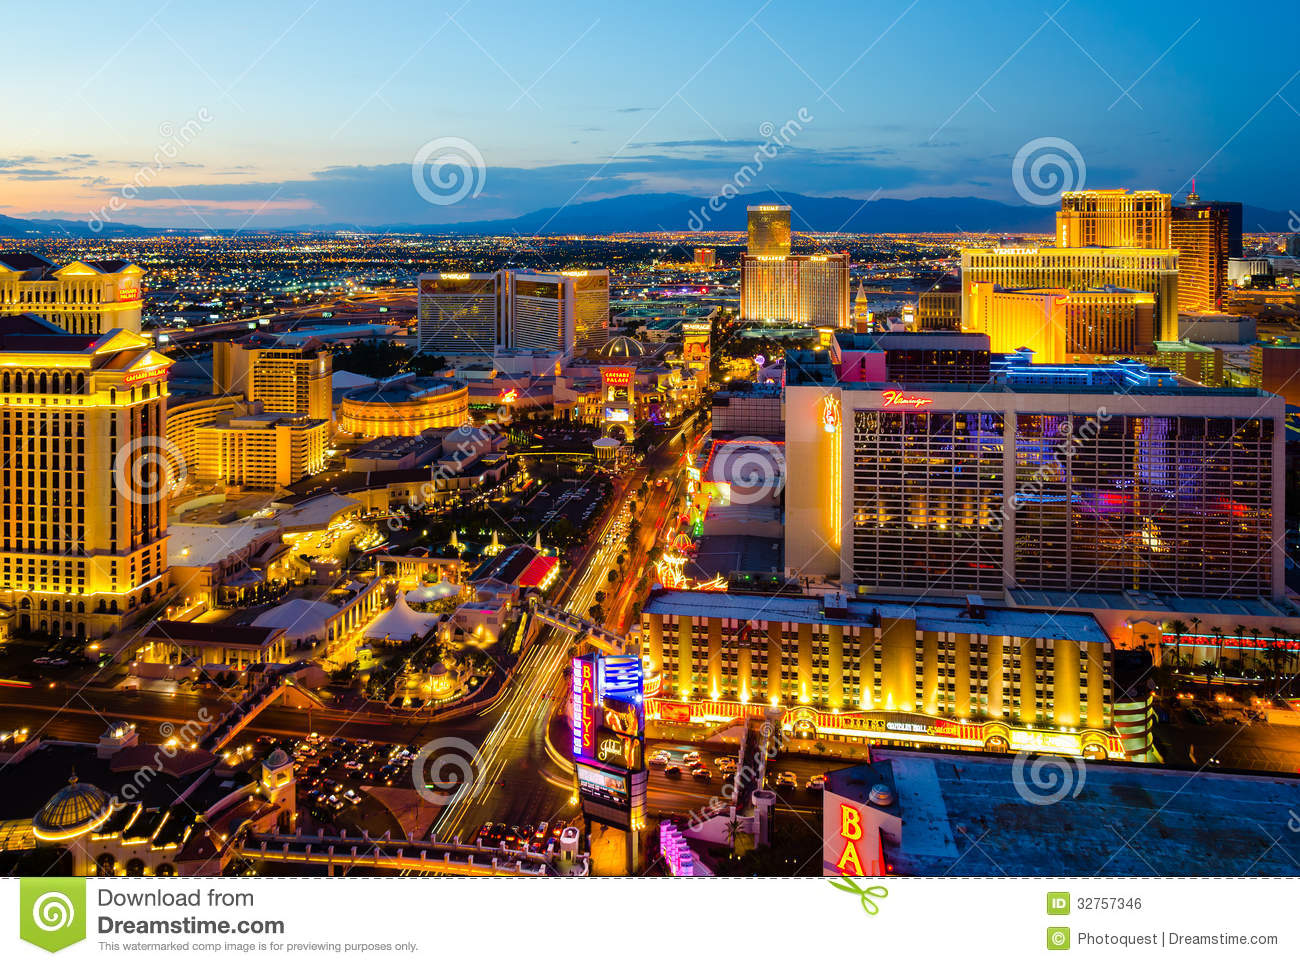 For that Aerial view las vegas strip god knows!